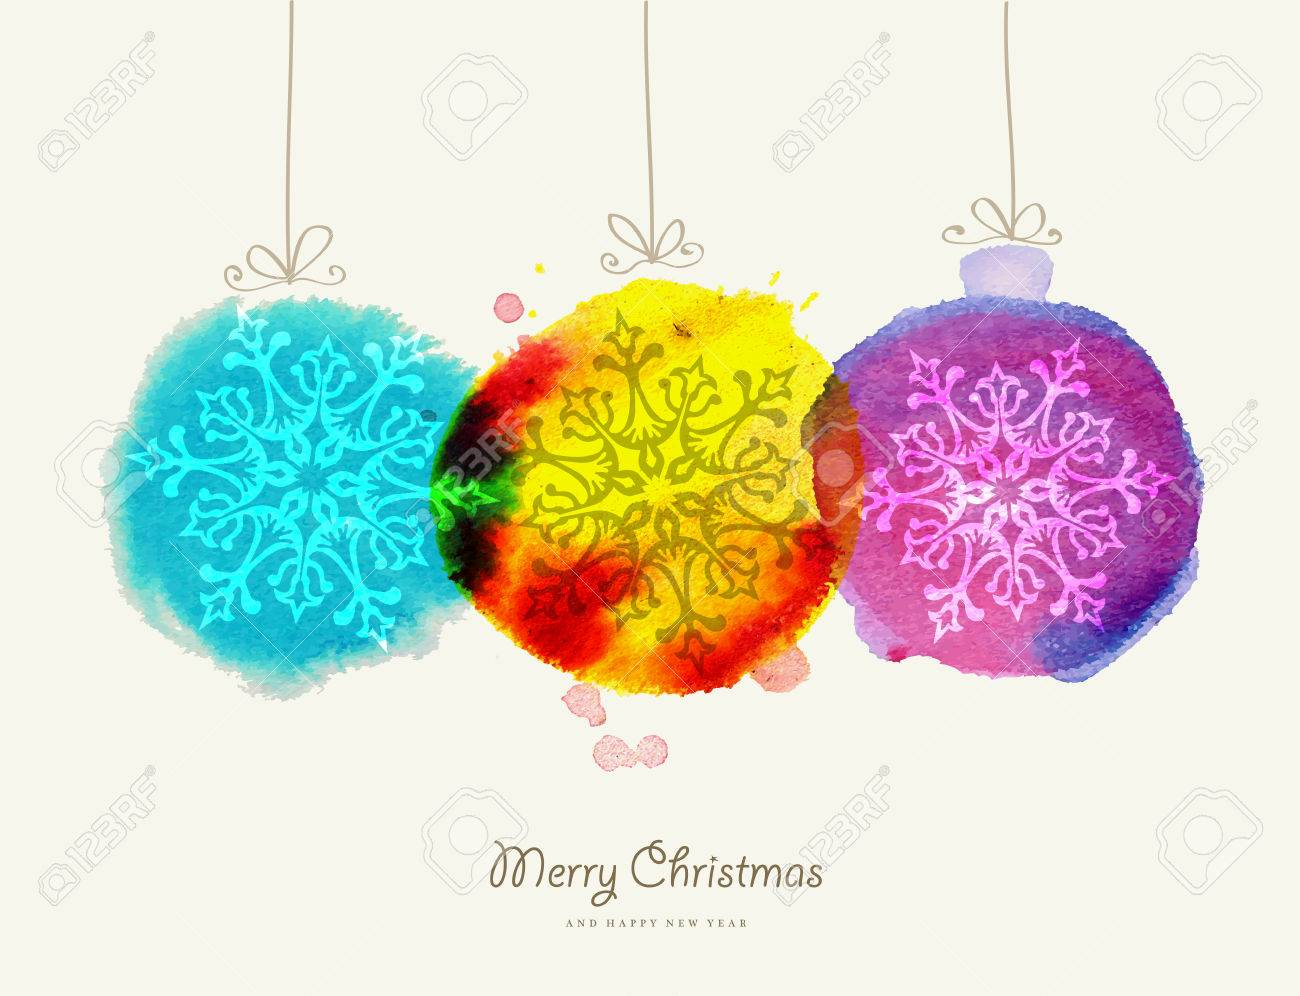 Merry christmas greeting card handmade baubles watercolor texture merry christmas greeting card handmade baubles watercolor texture illustration eps10 vector file organized in layers kristyandbryce Gallery